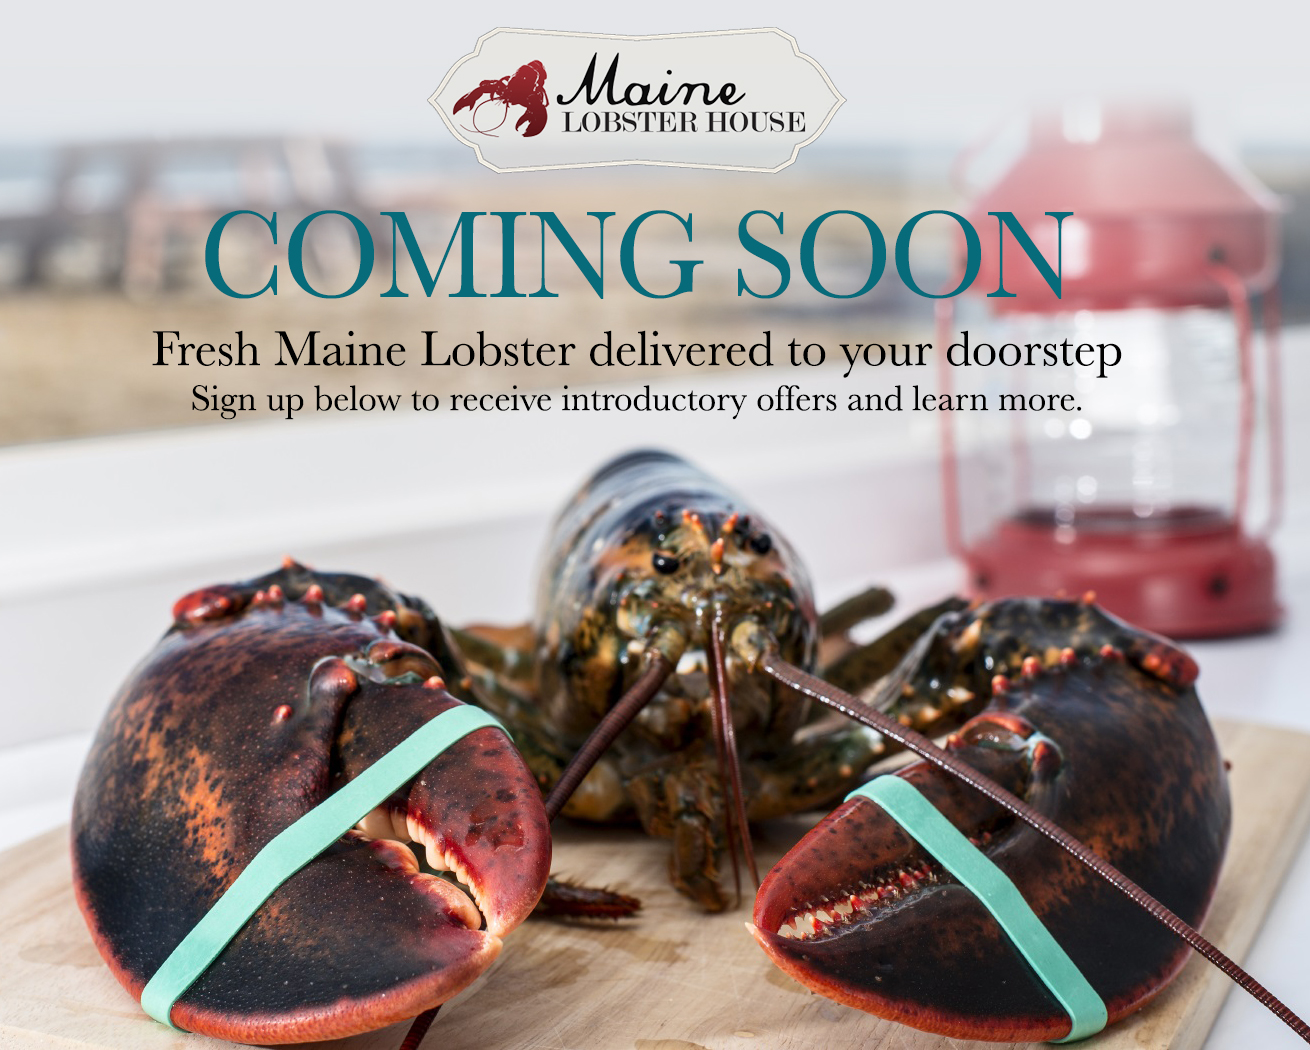 Maine Lobster House - Coming Soon!